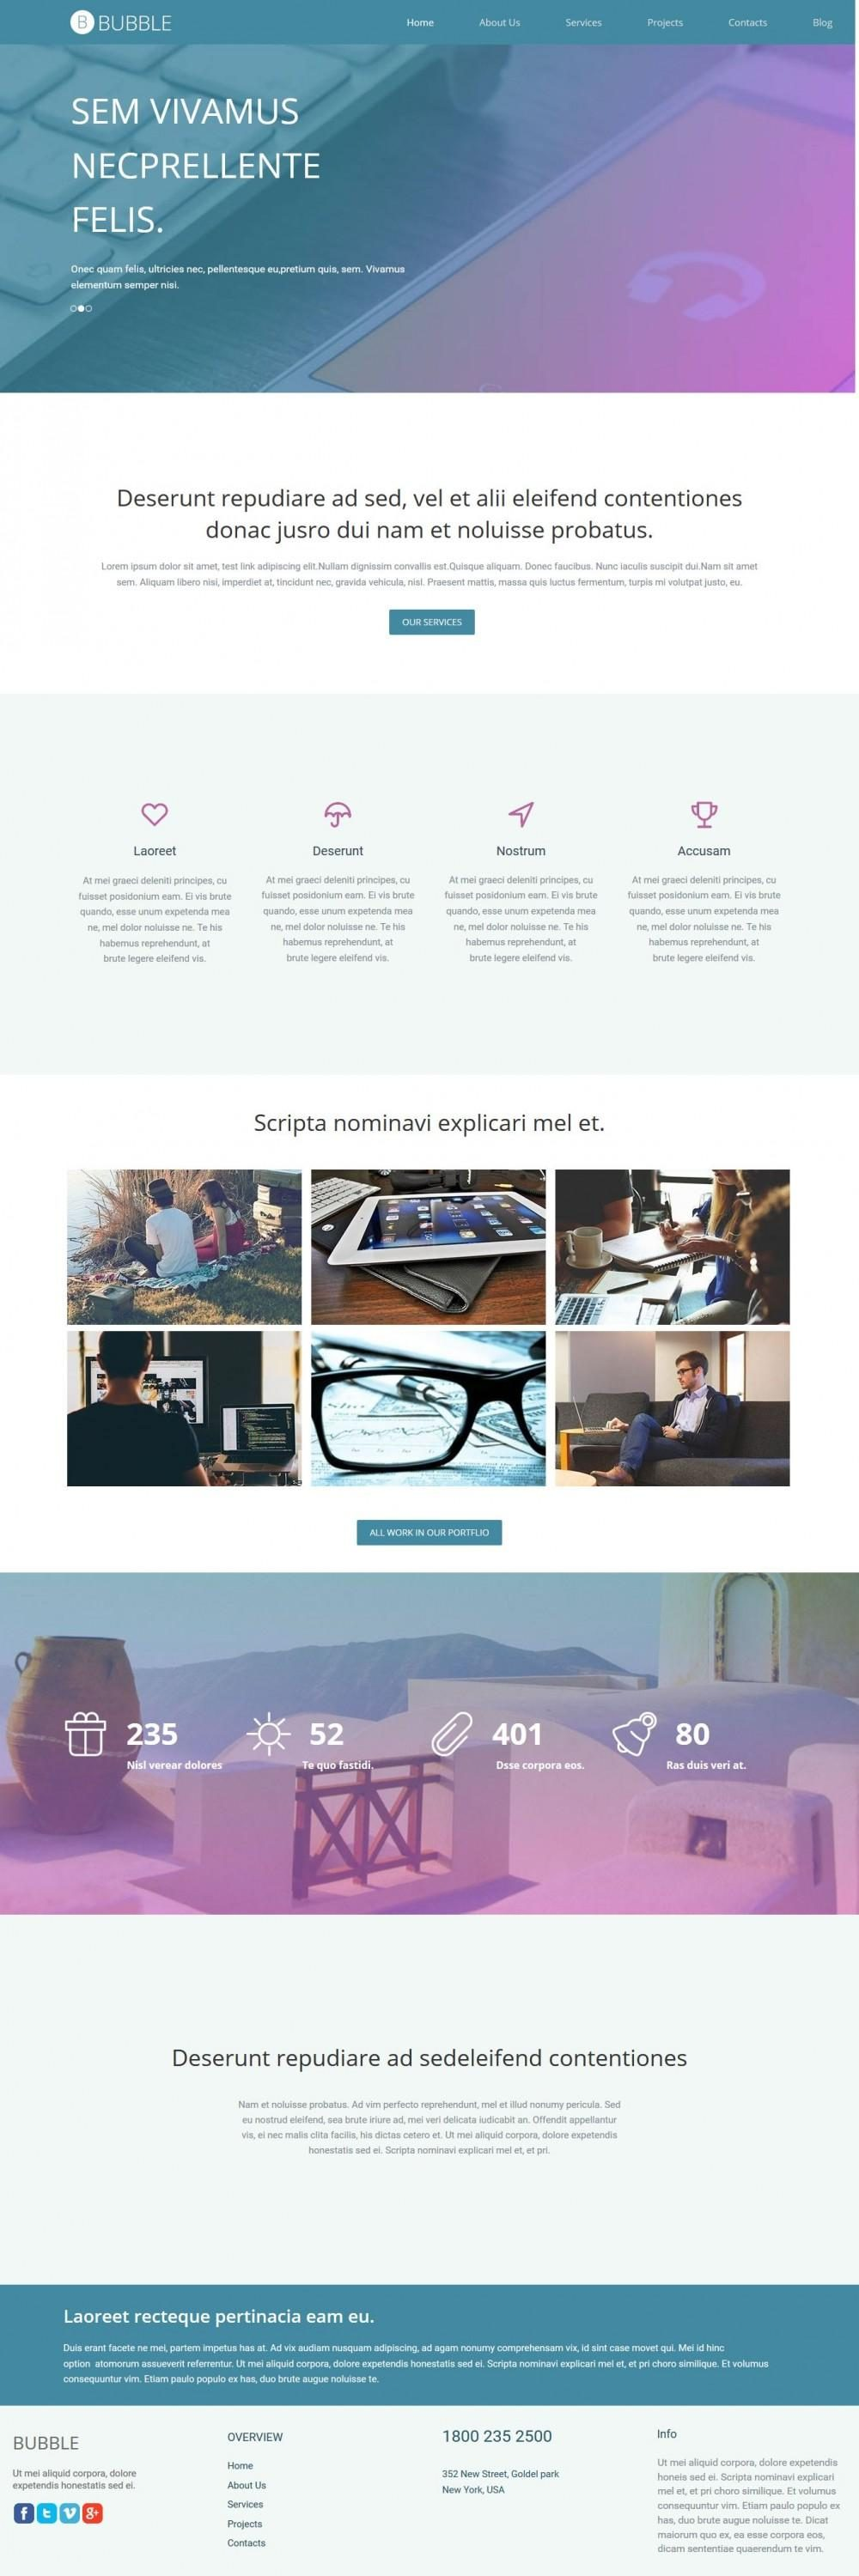 Bubble - Premium Web/App Design WordPress Theme